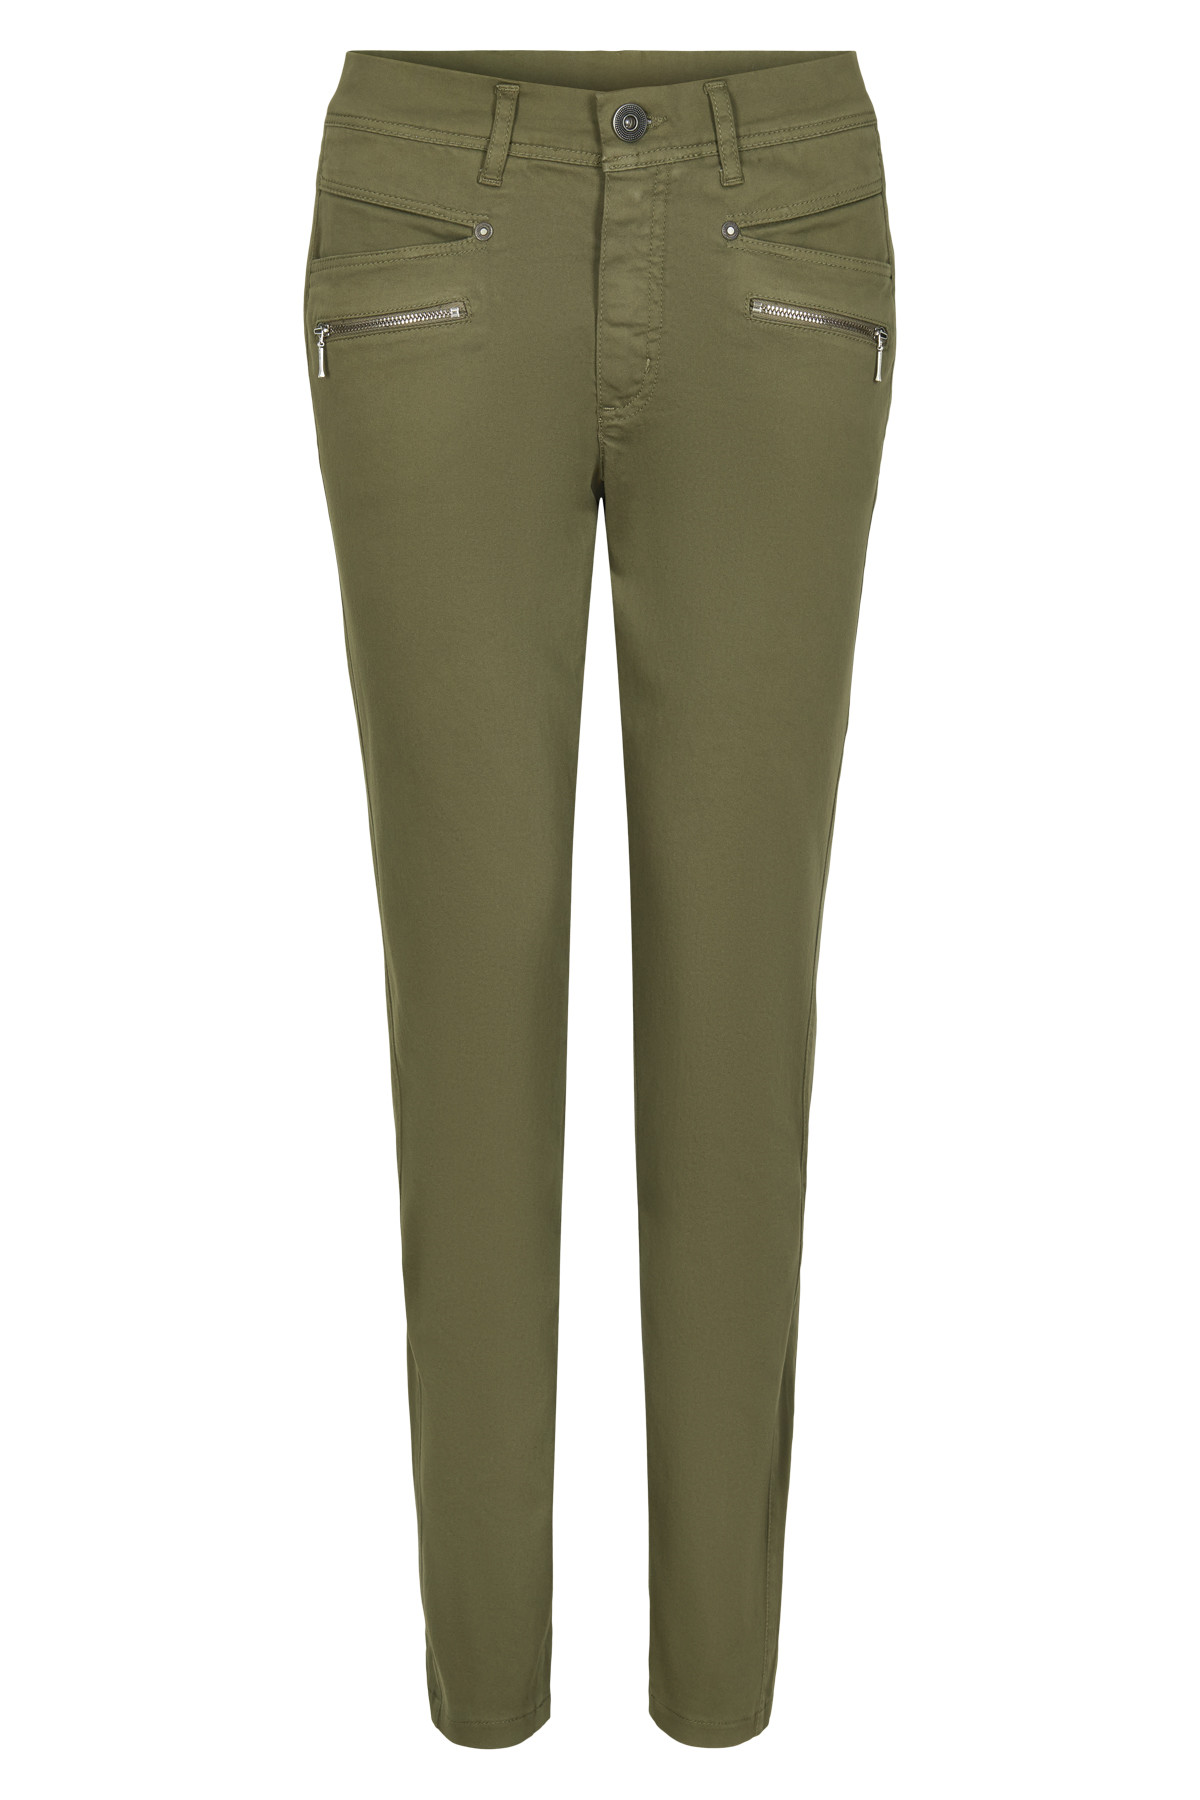 Image of 2BIZ RANY PANTS 43654 (Khaki, 46)